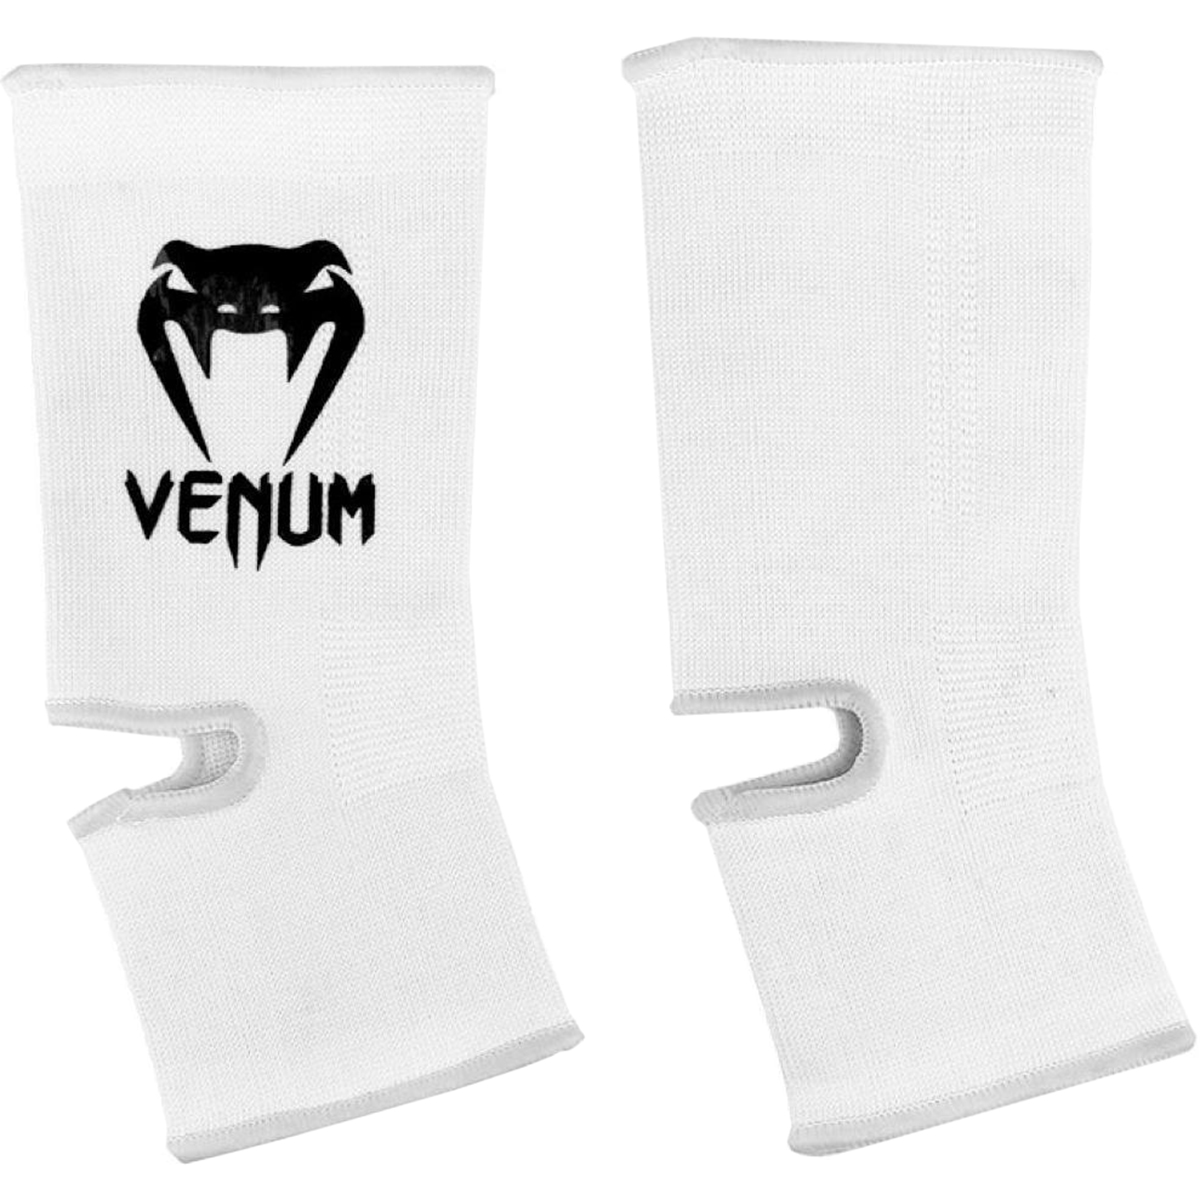 thumbnail 27 - Venum Kontact Slip-On MMA Pro Ankle Support Guards